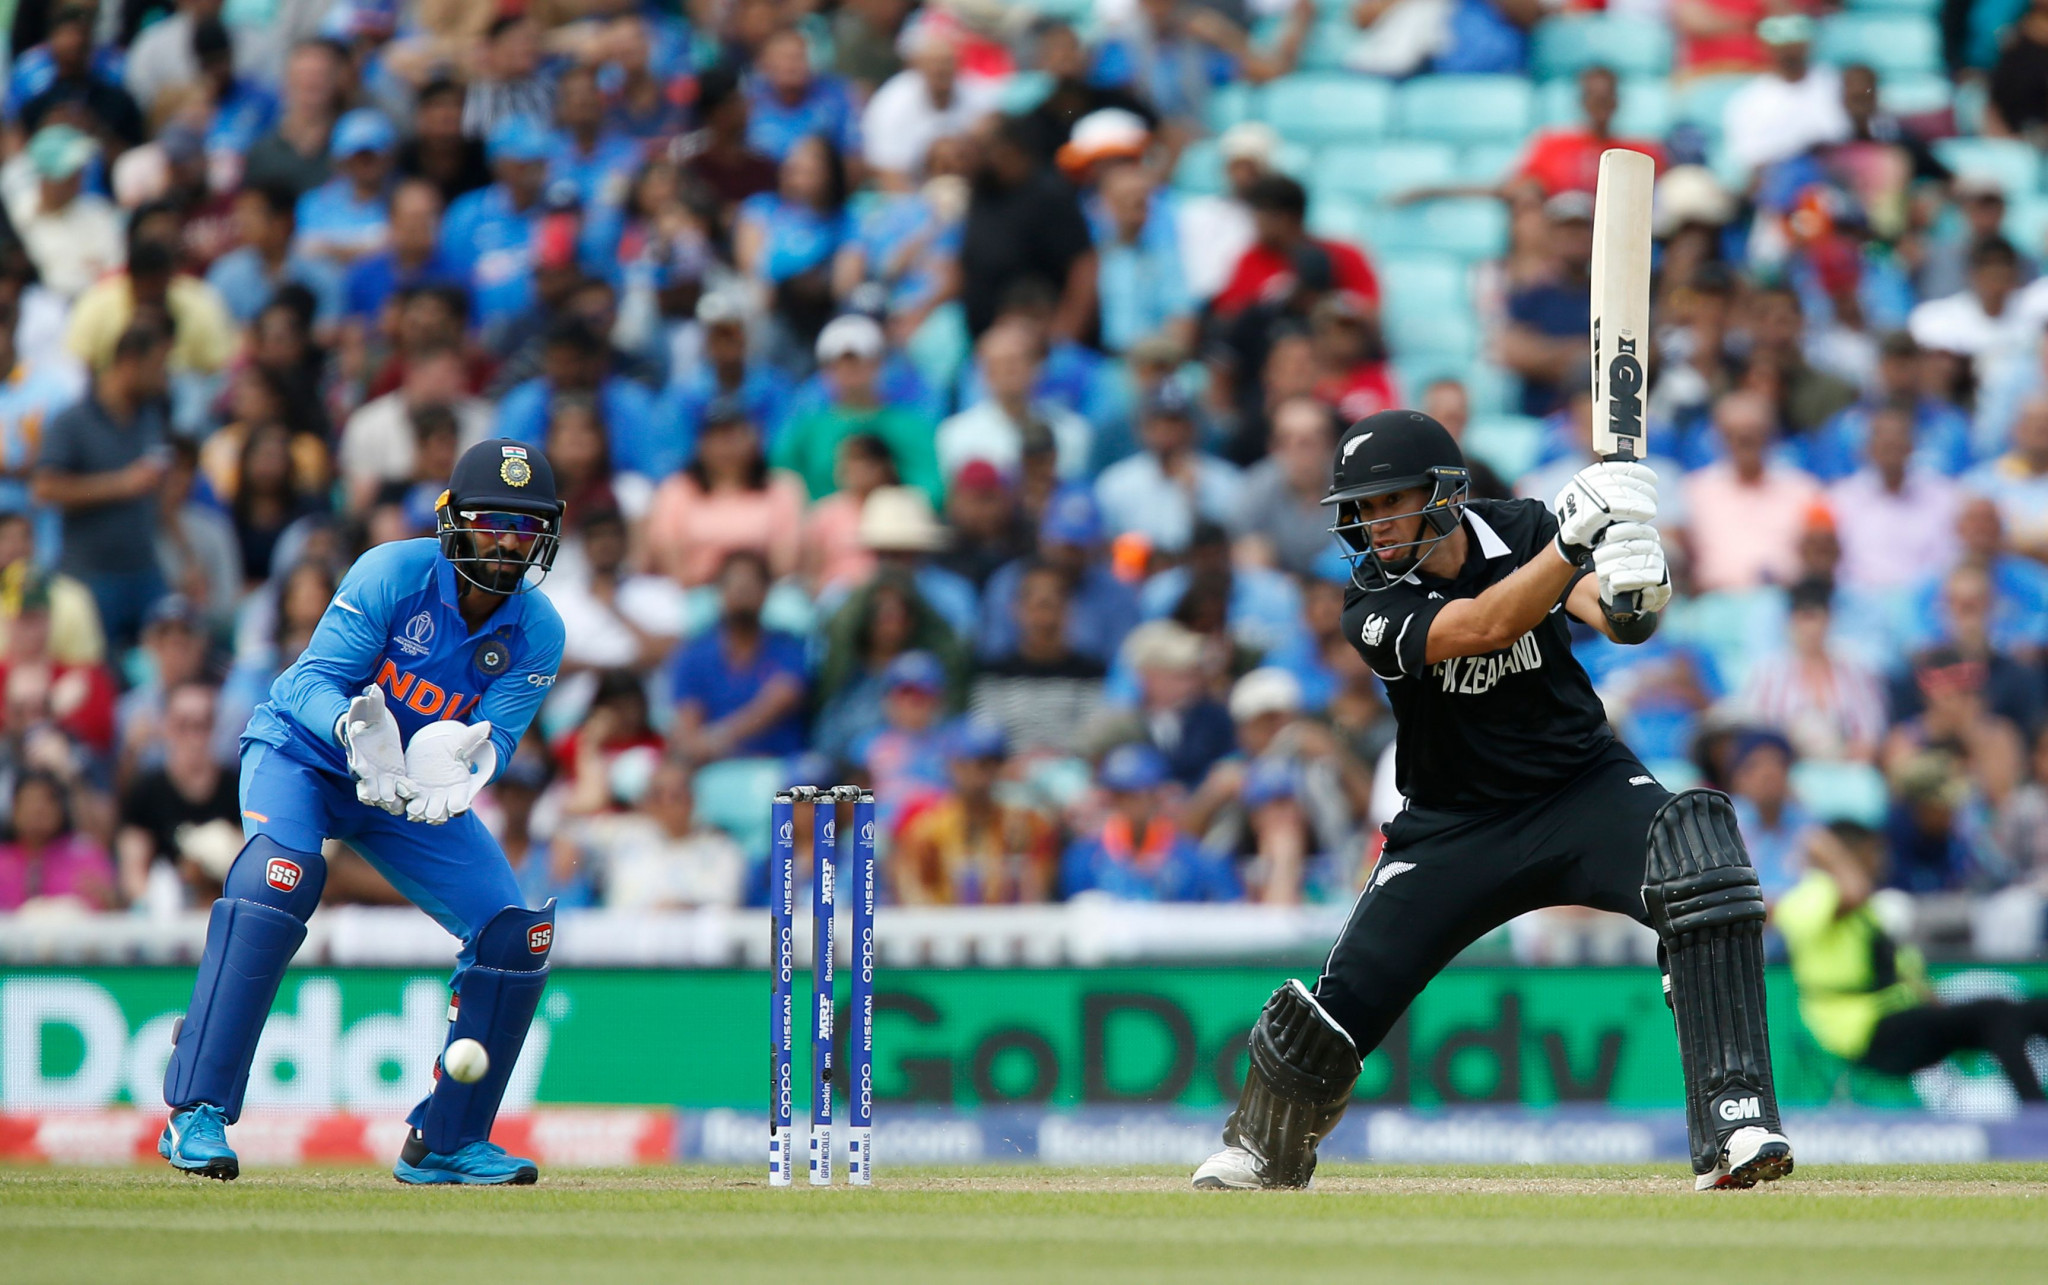 New Zealand thrash India in ICC Cricket World Cup warm-up game